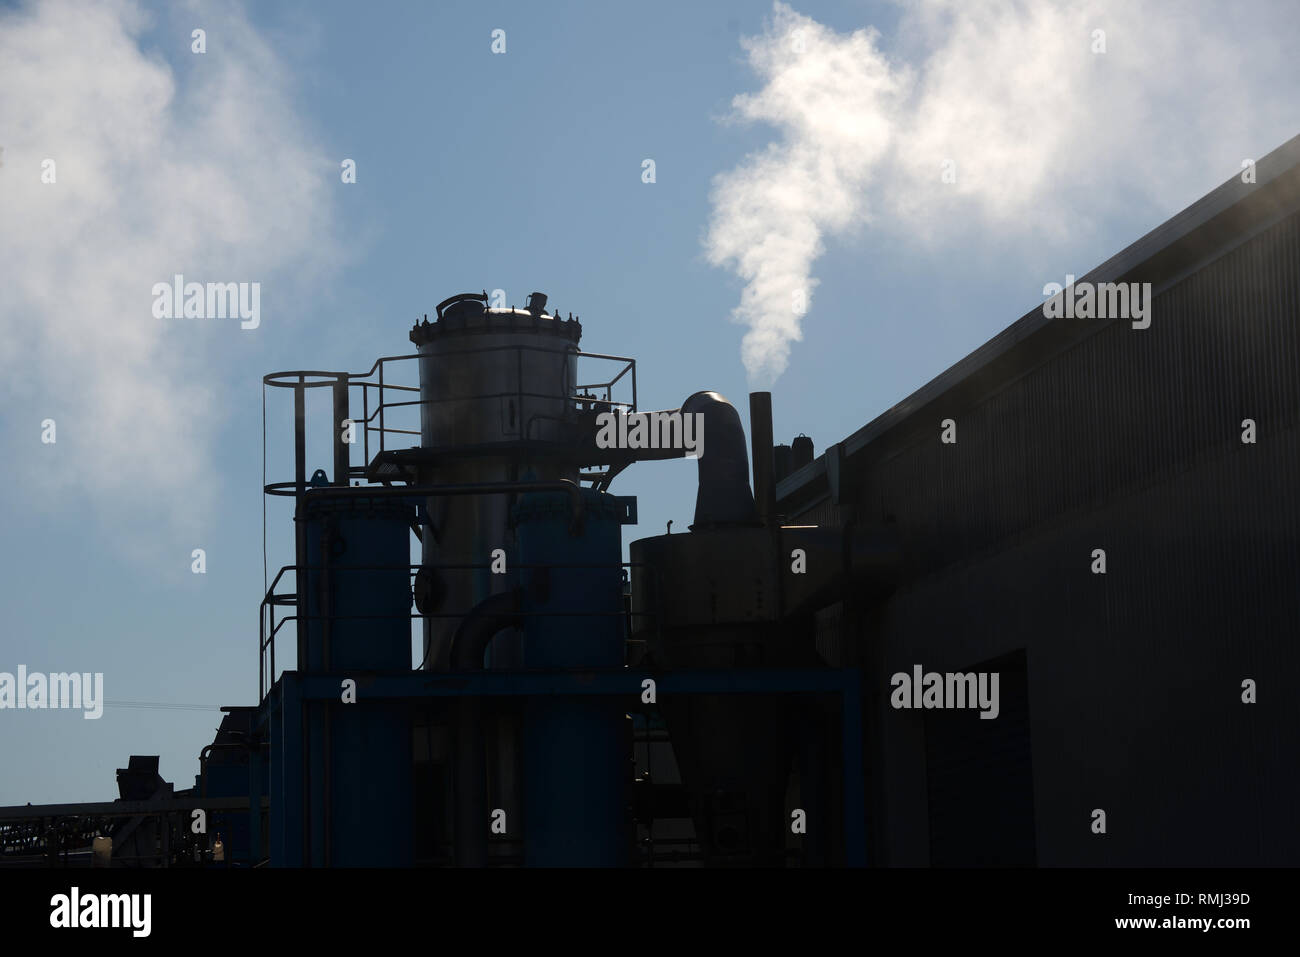 steam escapes from an evaporator at a meal processing plant - Stock Image